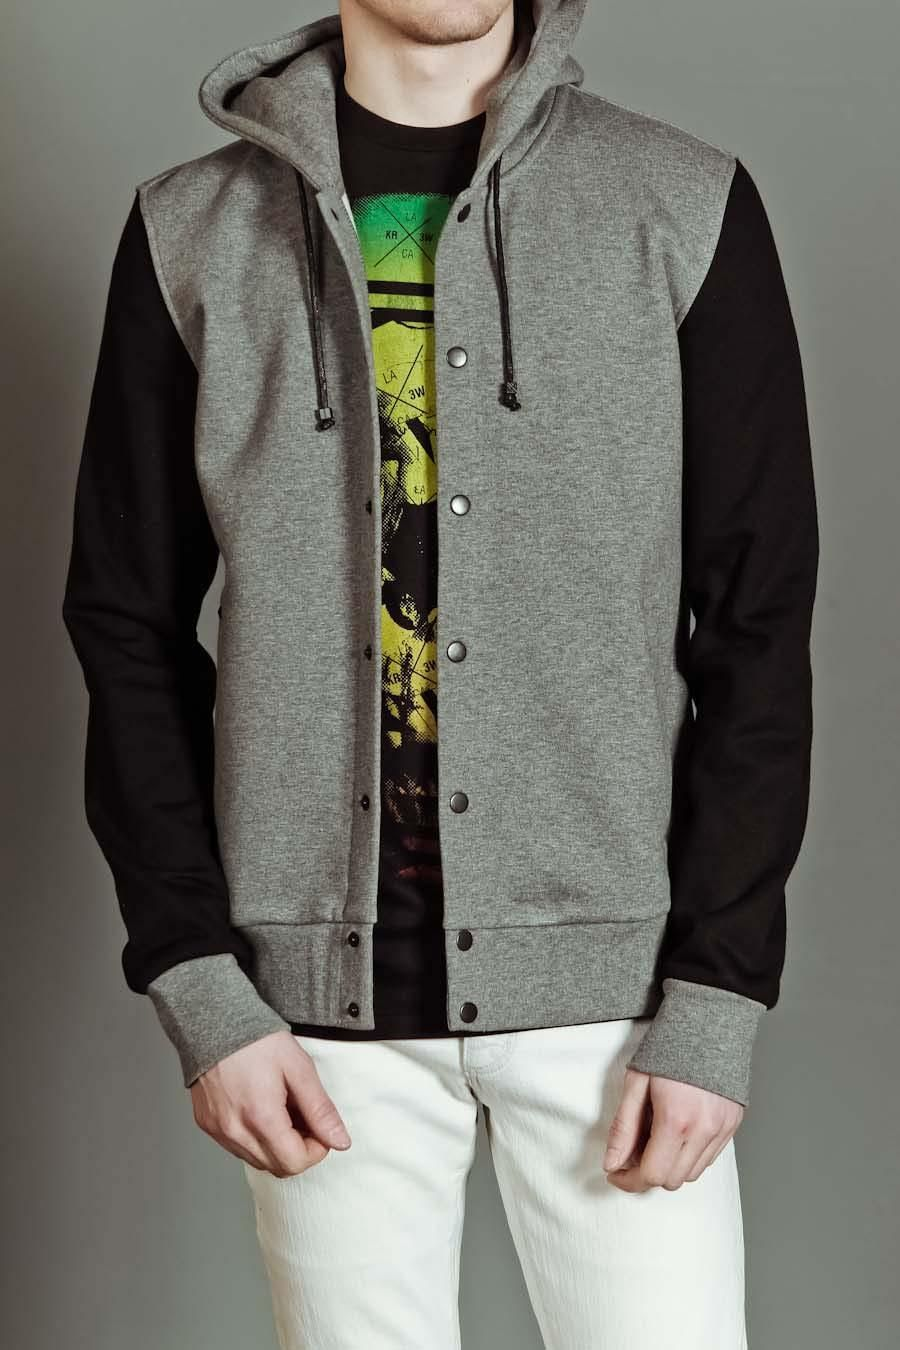 Krw morrison fleece in grey put these on or about me pinterest